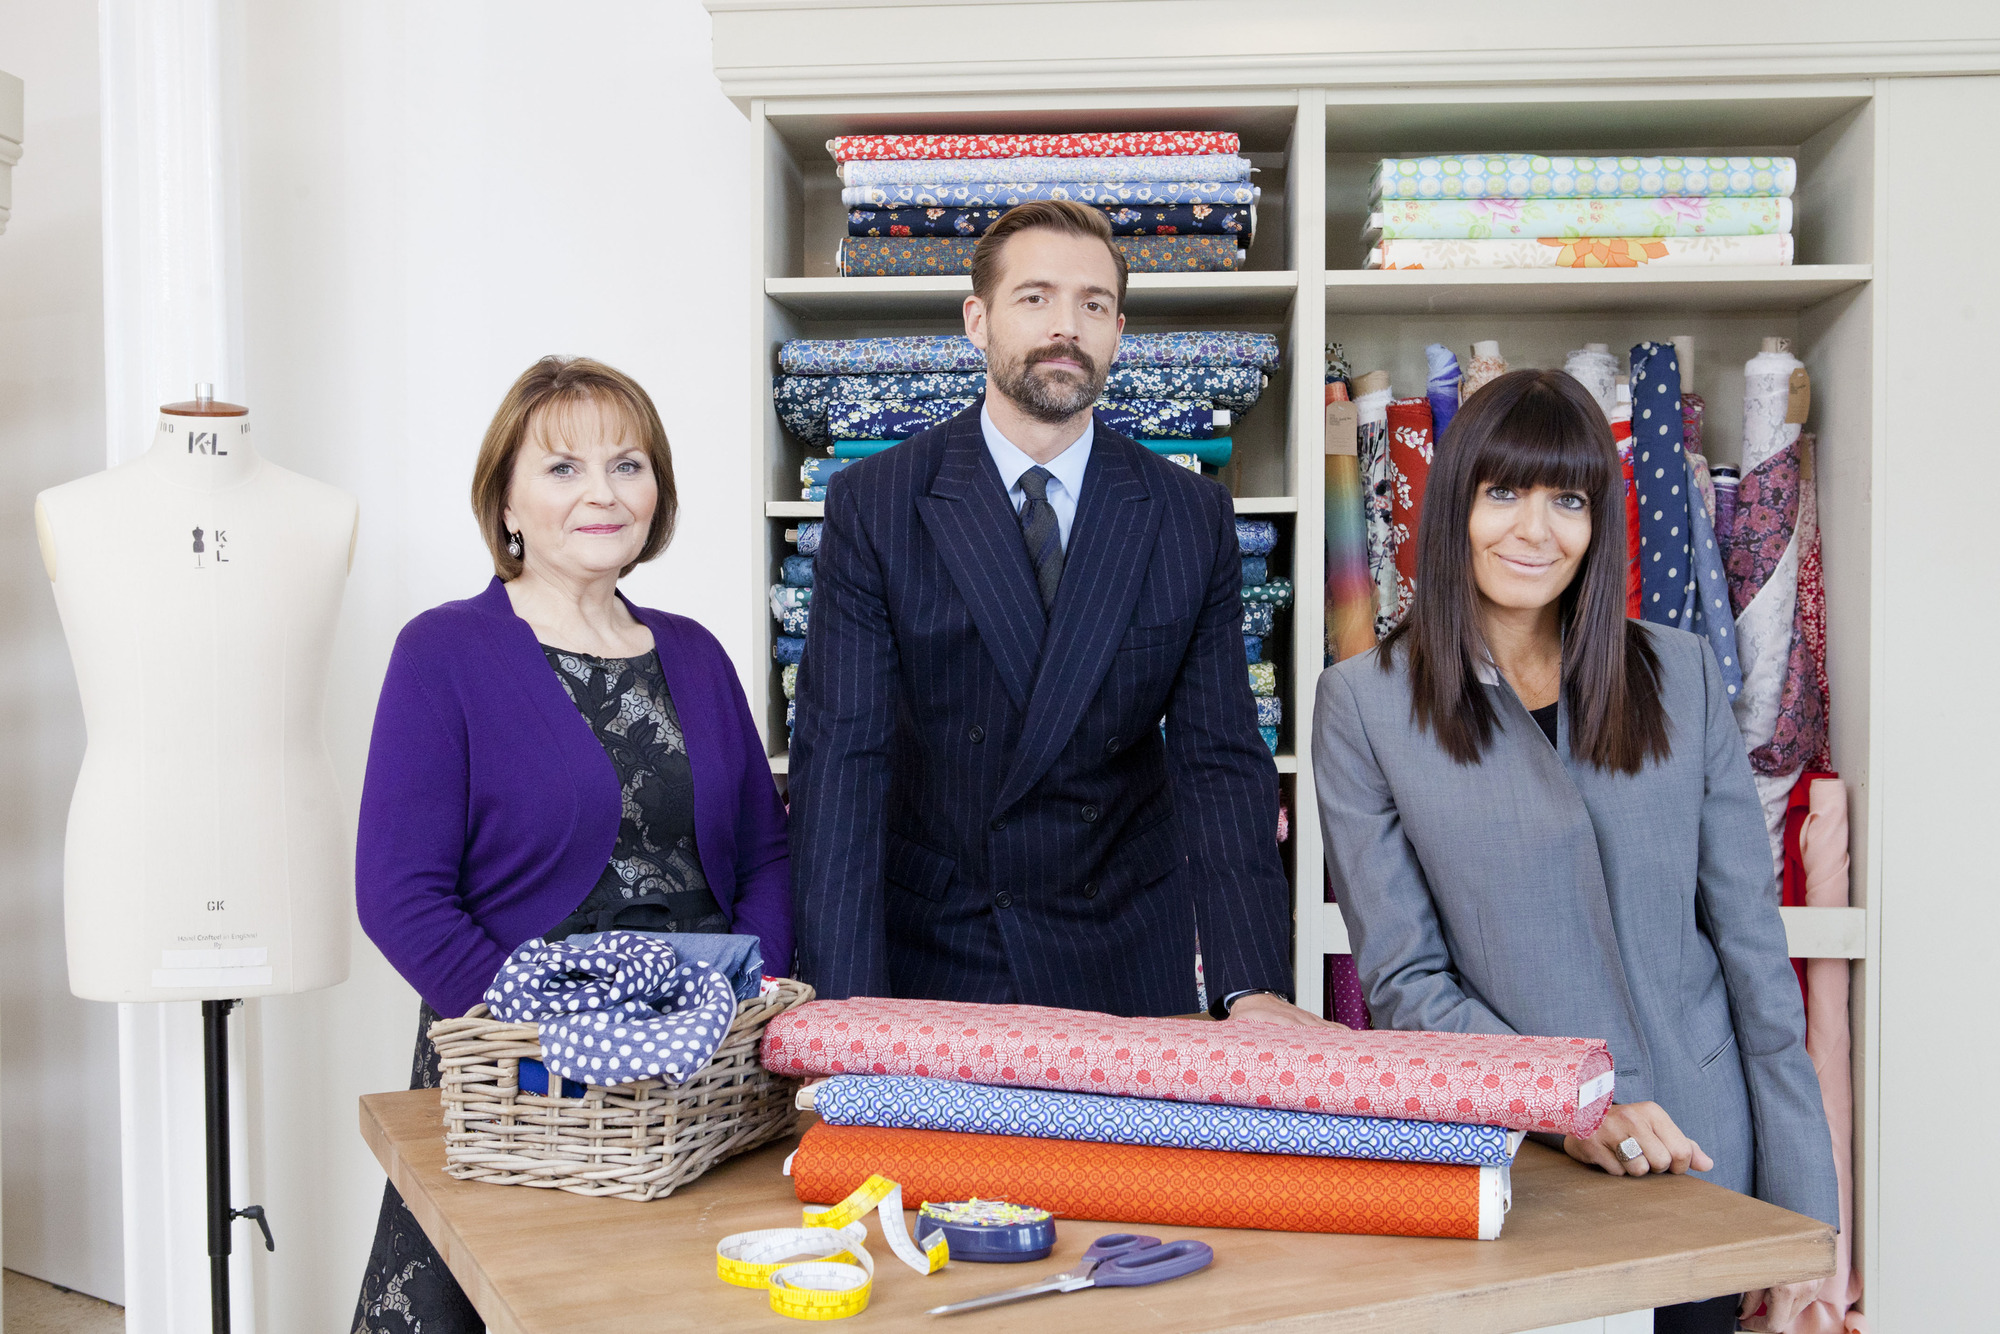 The Great British Sewing Bee 2014: The search is on for a super stitcher but who didn't make it past the silk nightie challenge?